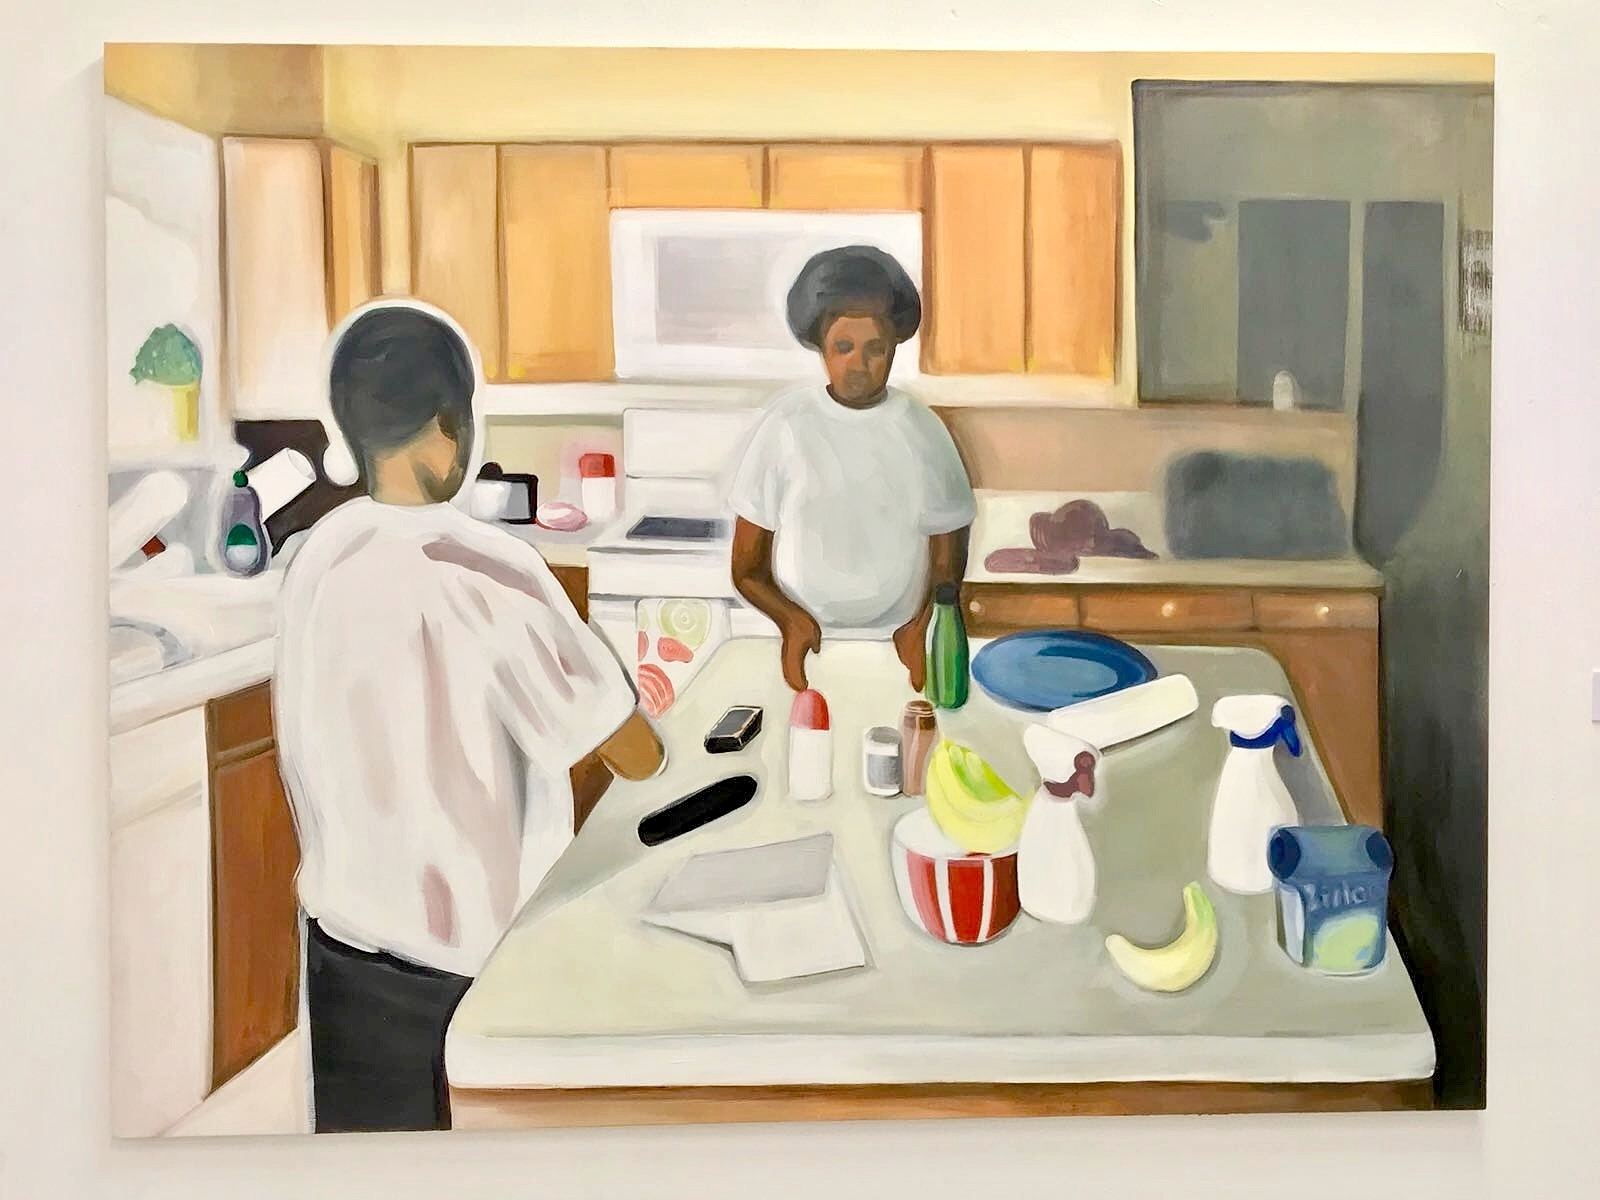 The Kitchen,  2018 Oil on canvas 55 x 71 inches 140 x 180 cm